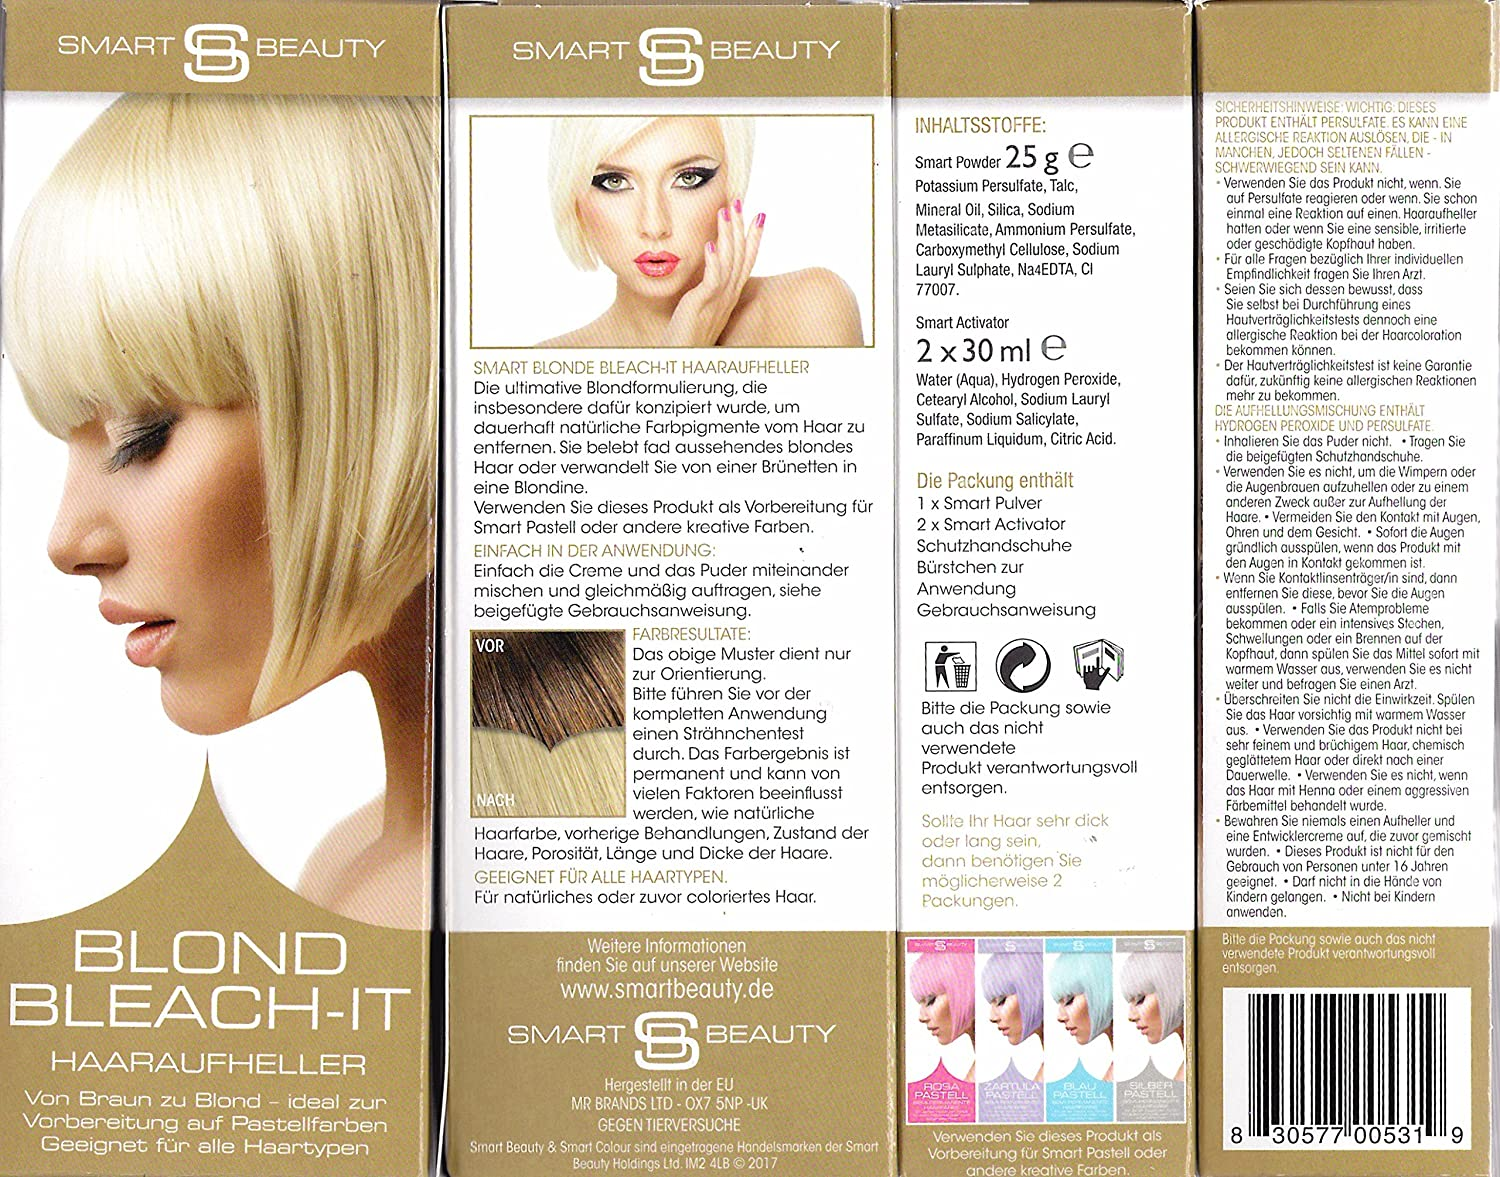 Smart Beauty Blond Bleach-it Haaraufheller 85 ml MR Bands Ltd. UK